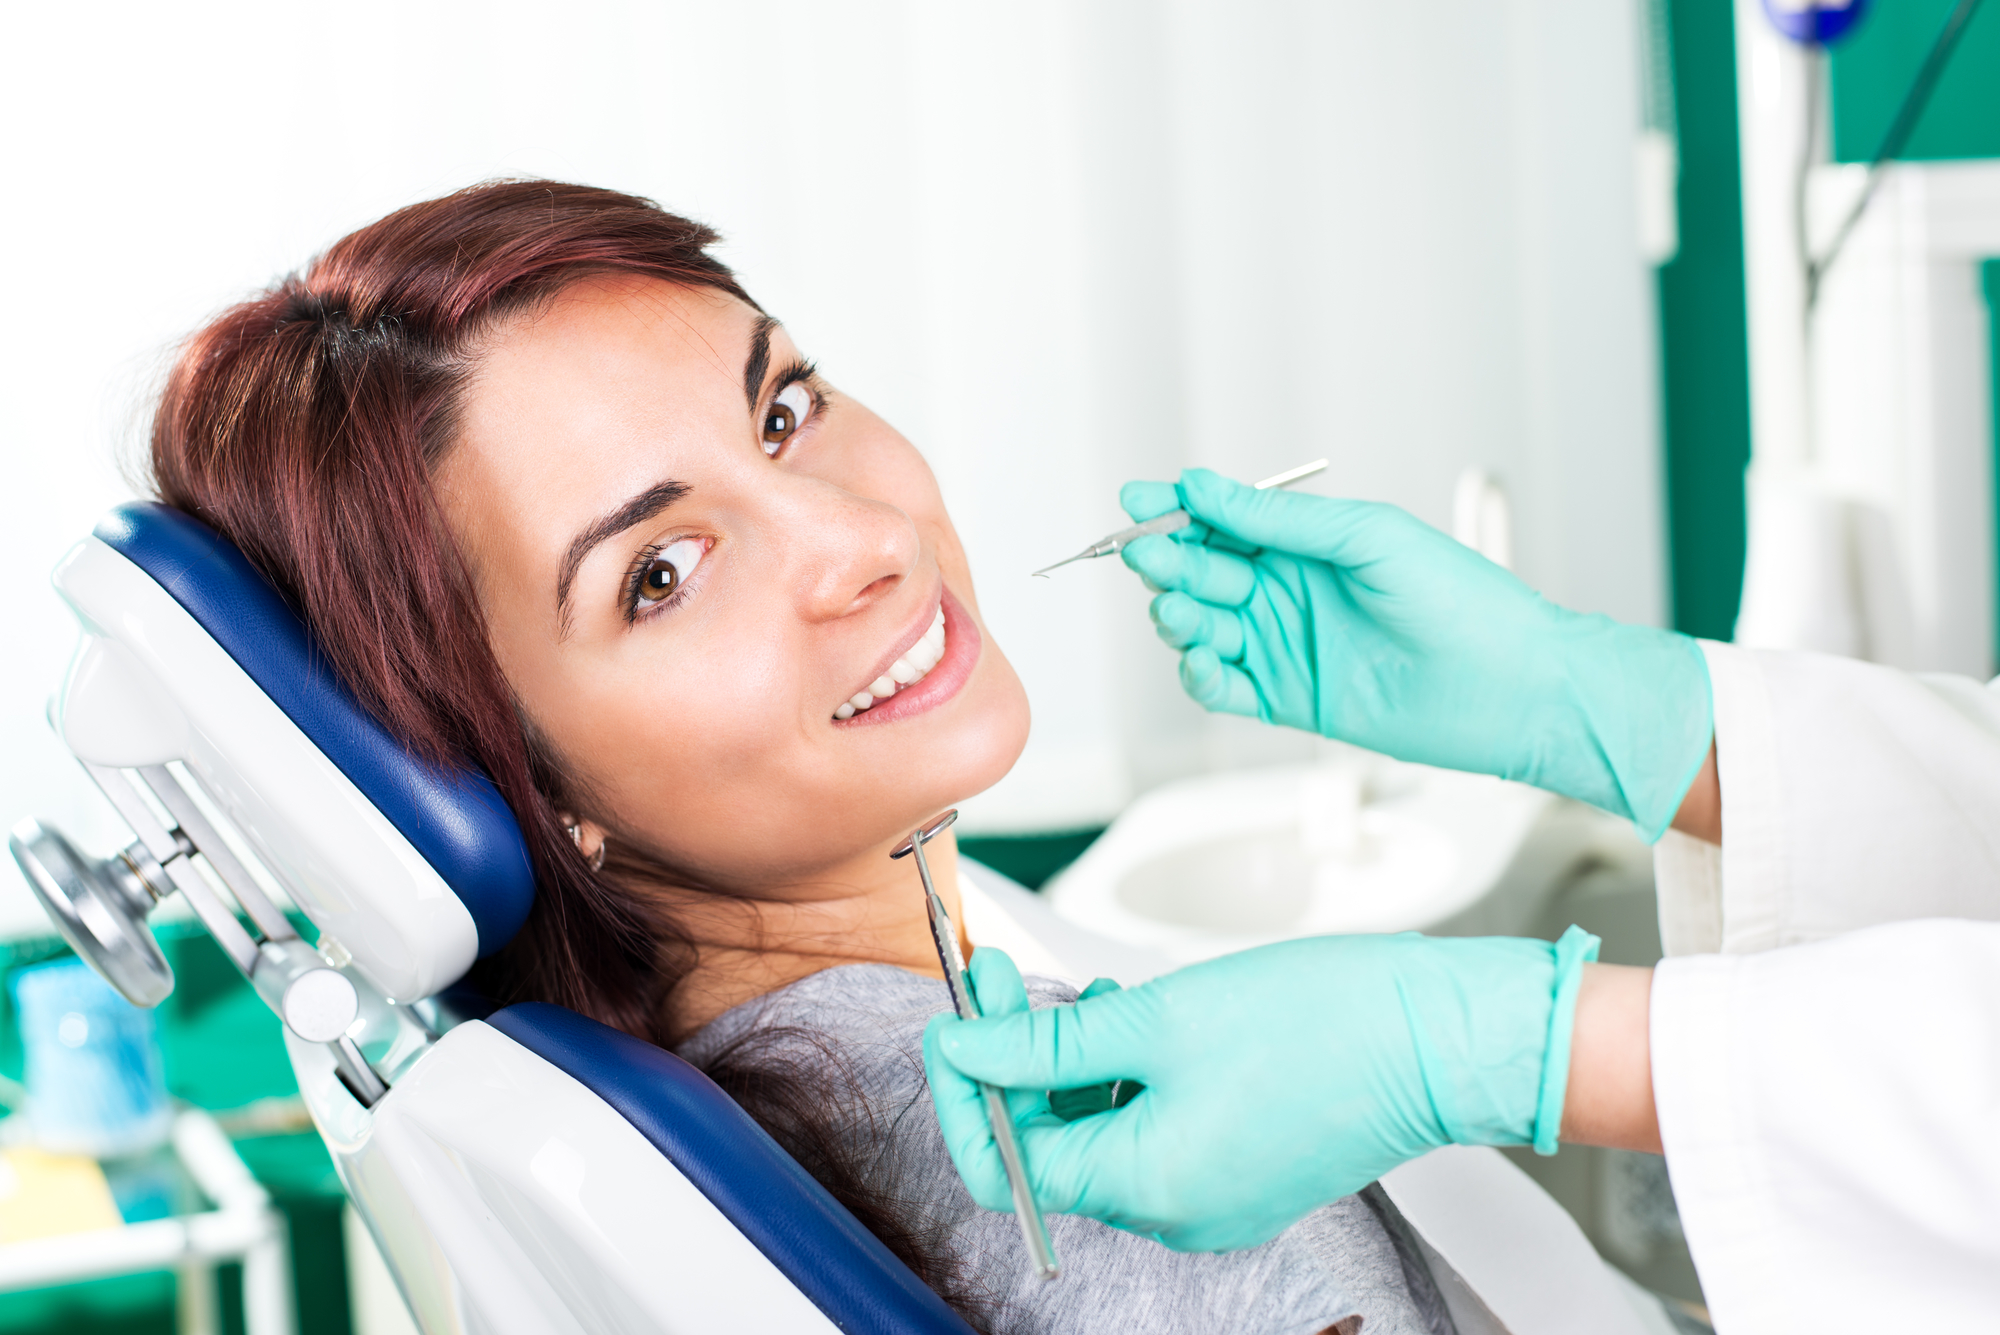 who offers dental implants aventura fl?